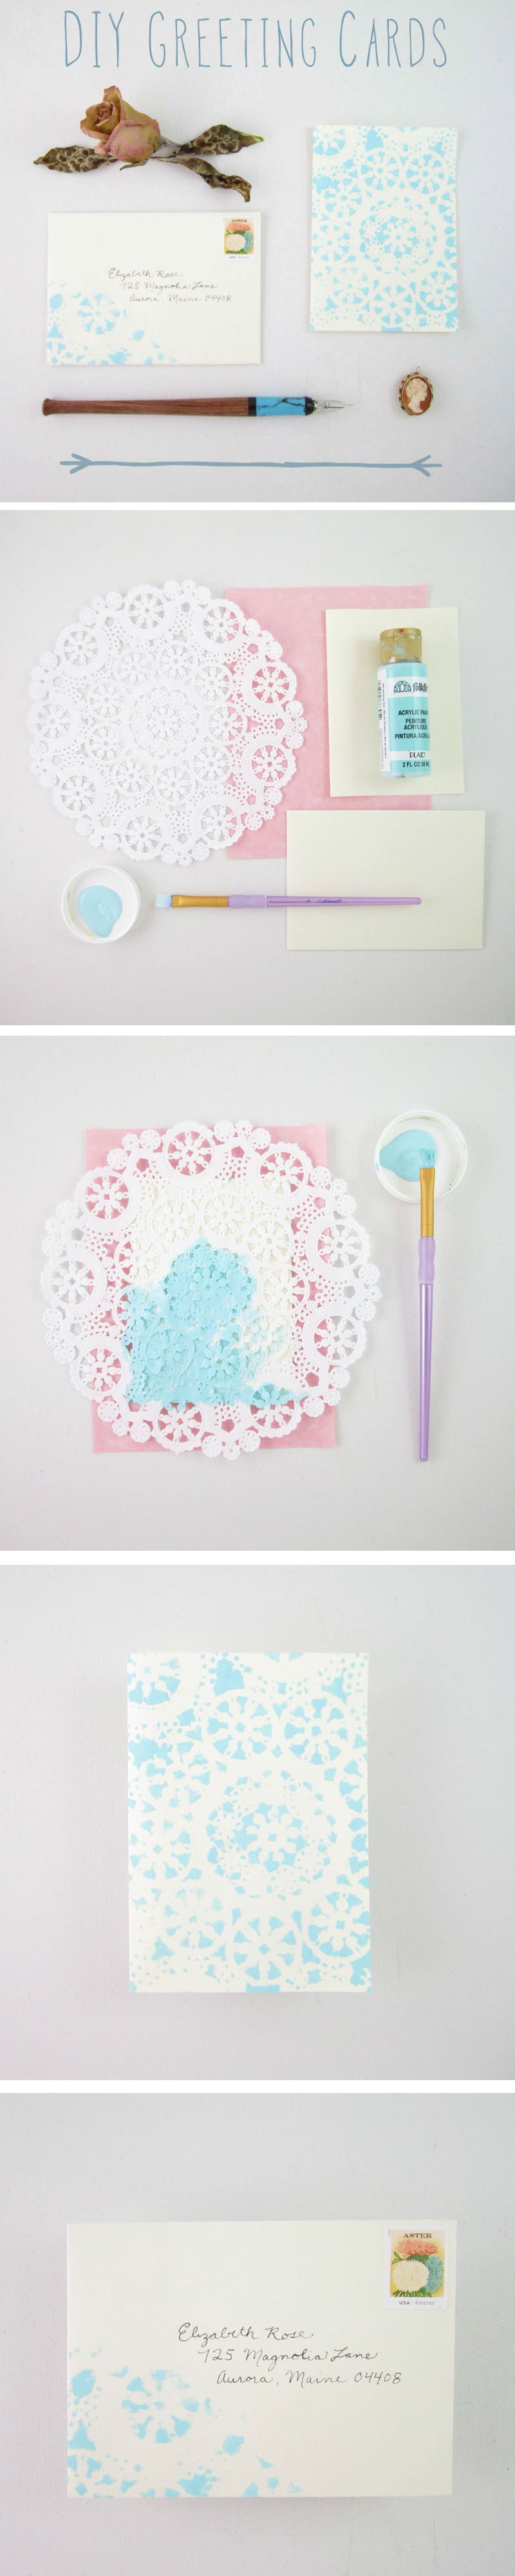 Simple DIY Lace Greeting Cards - www.lydiamakepeace.com